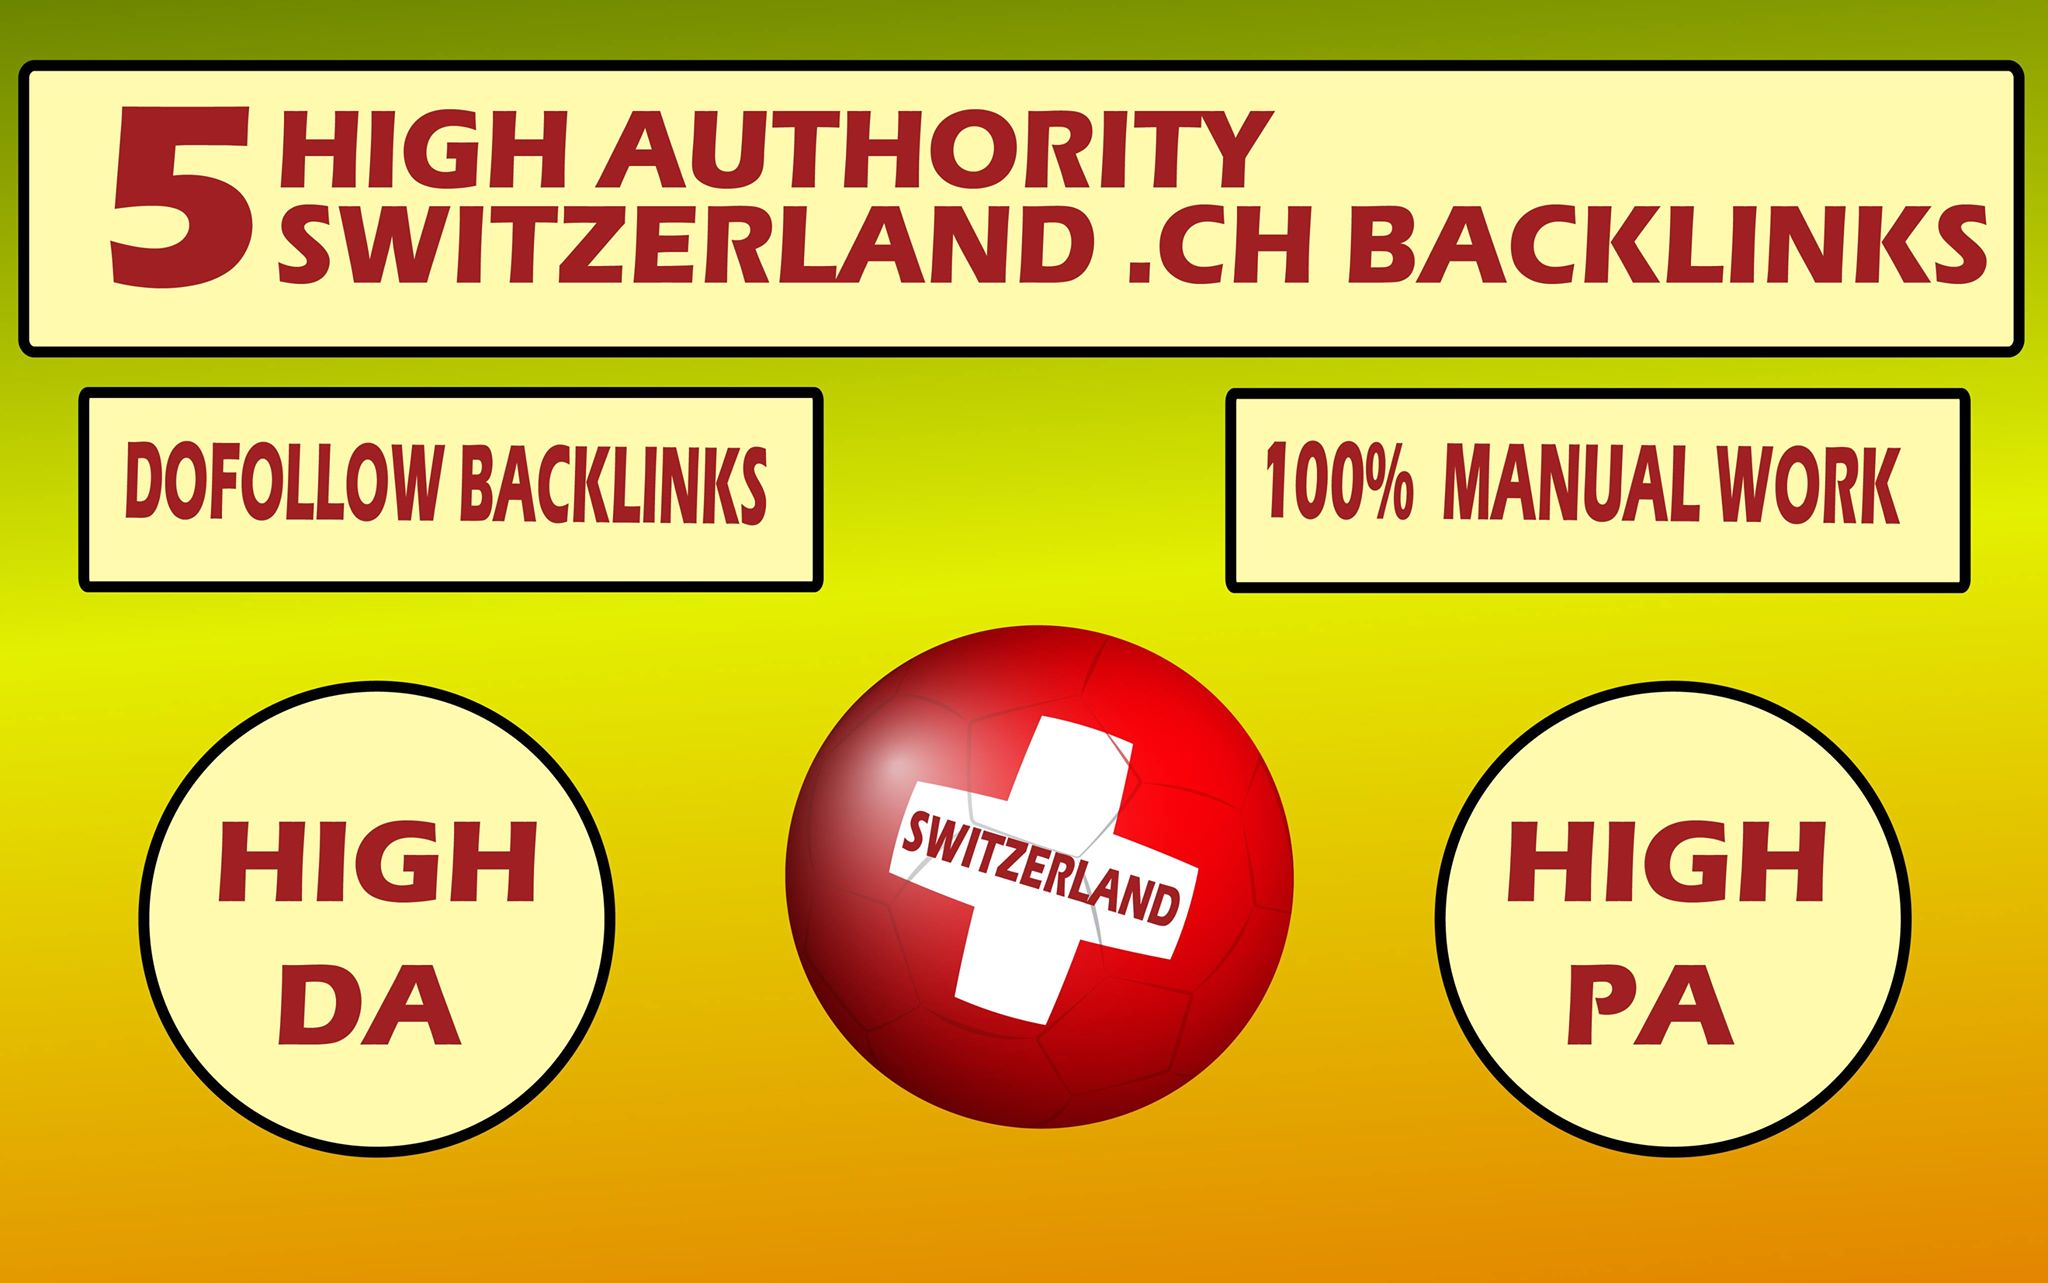 do 5 high authority switzerland blog dot ch backlinks with high da